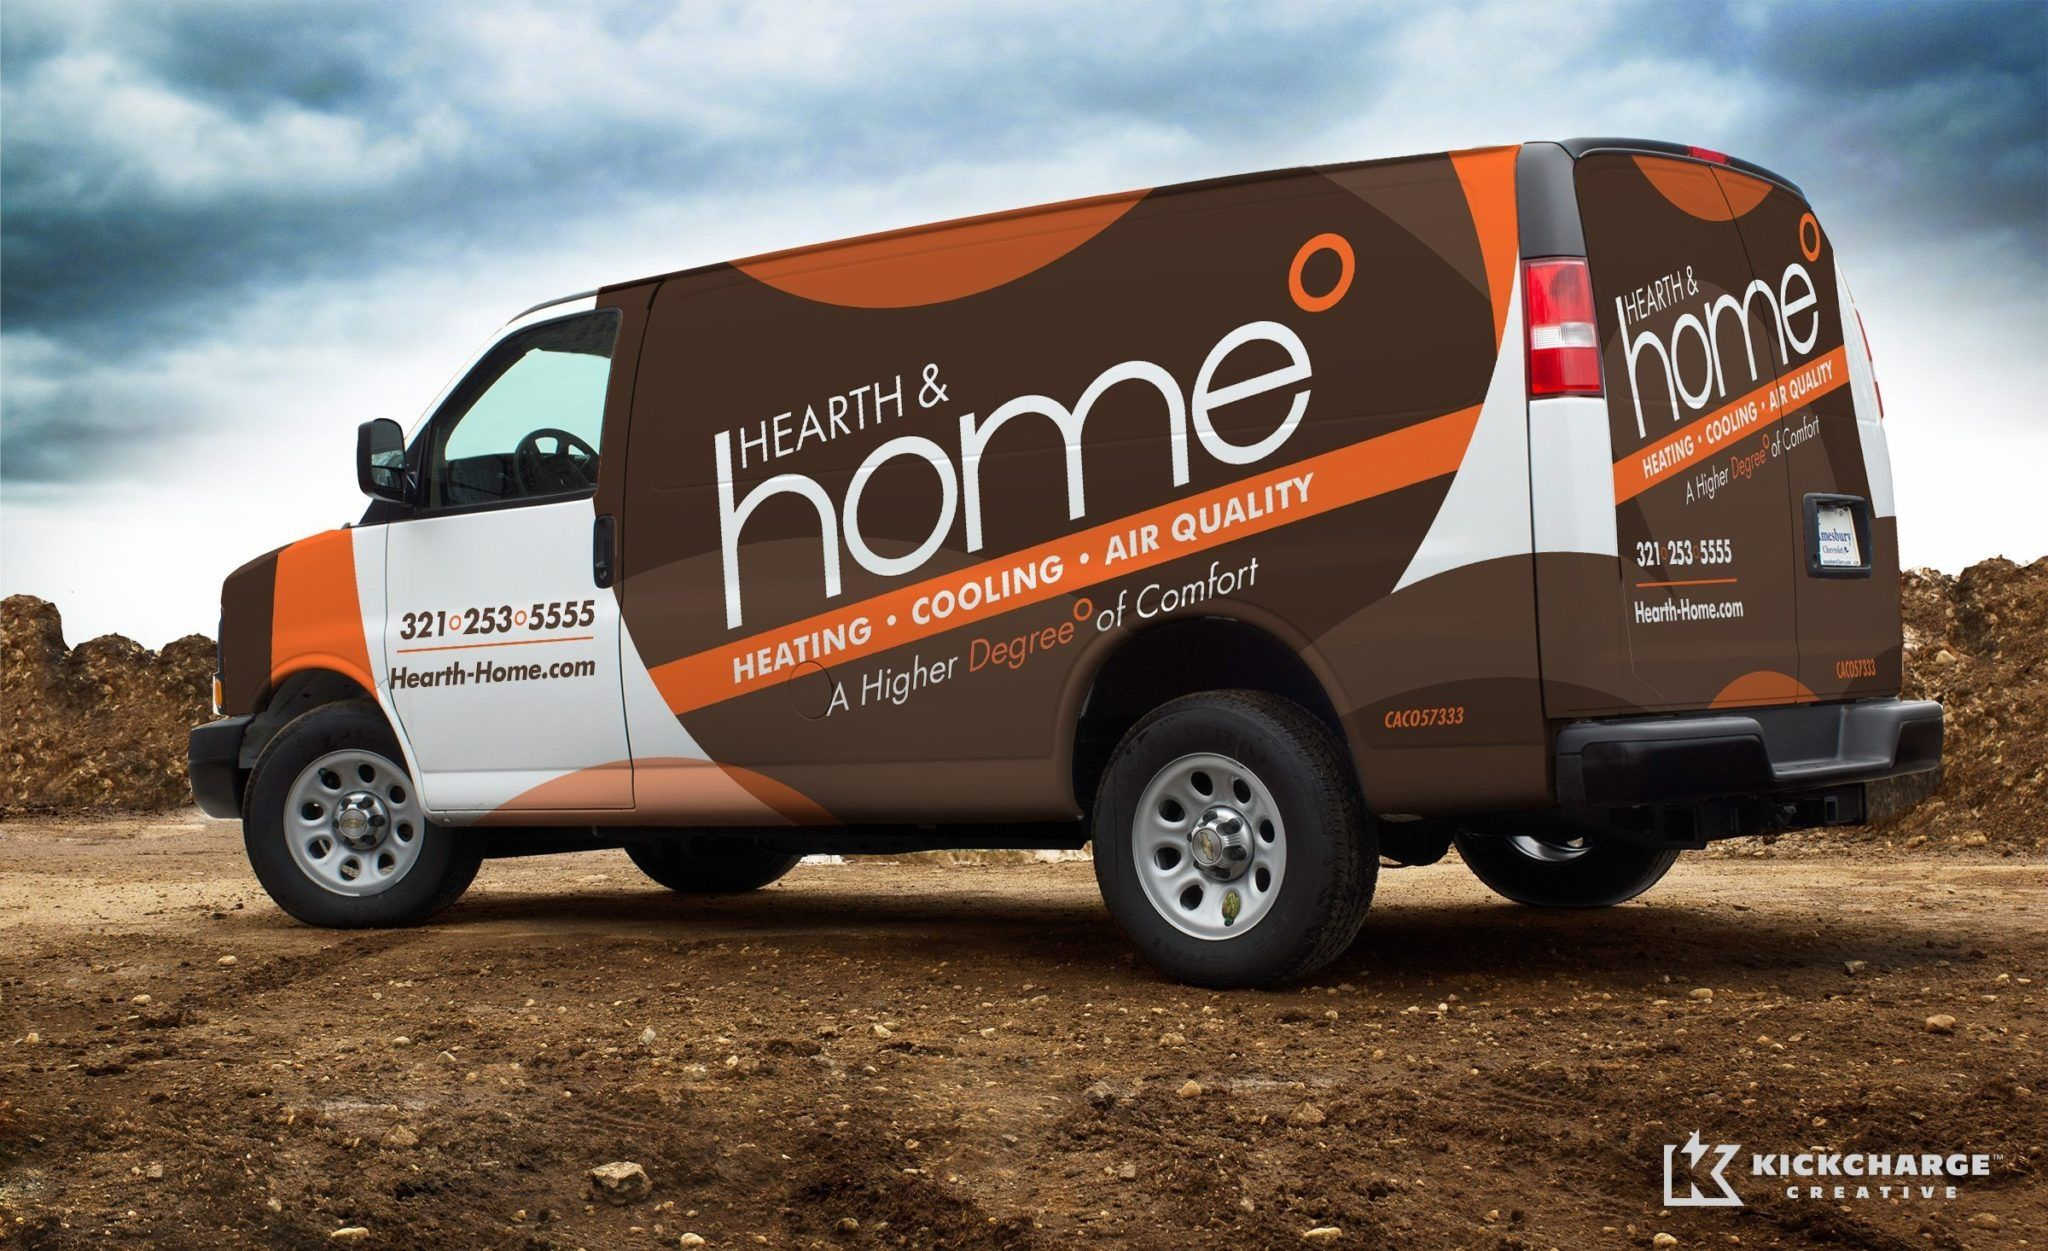 Hearth Home Kickcharge Creative With Images Car Wrap Car